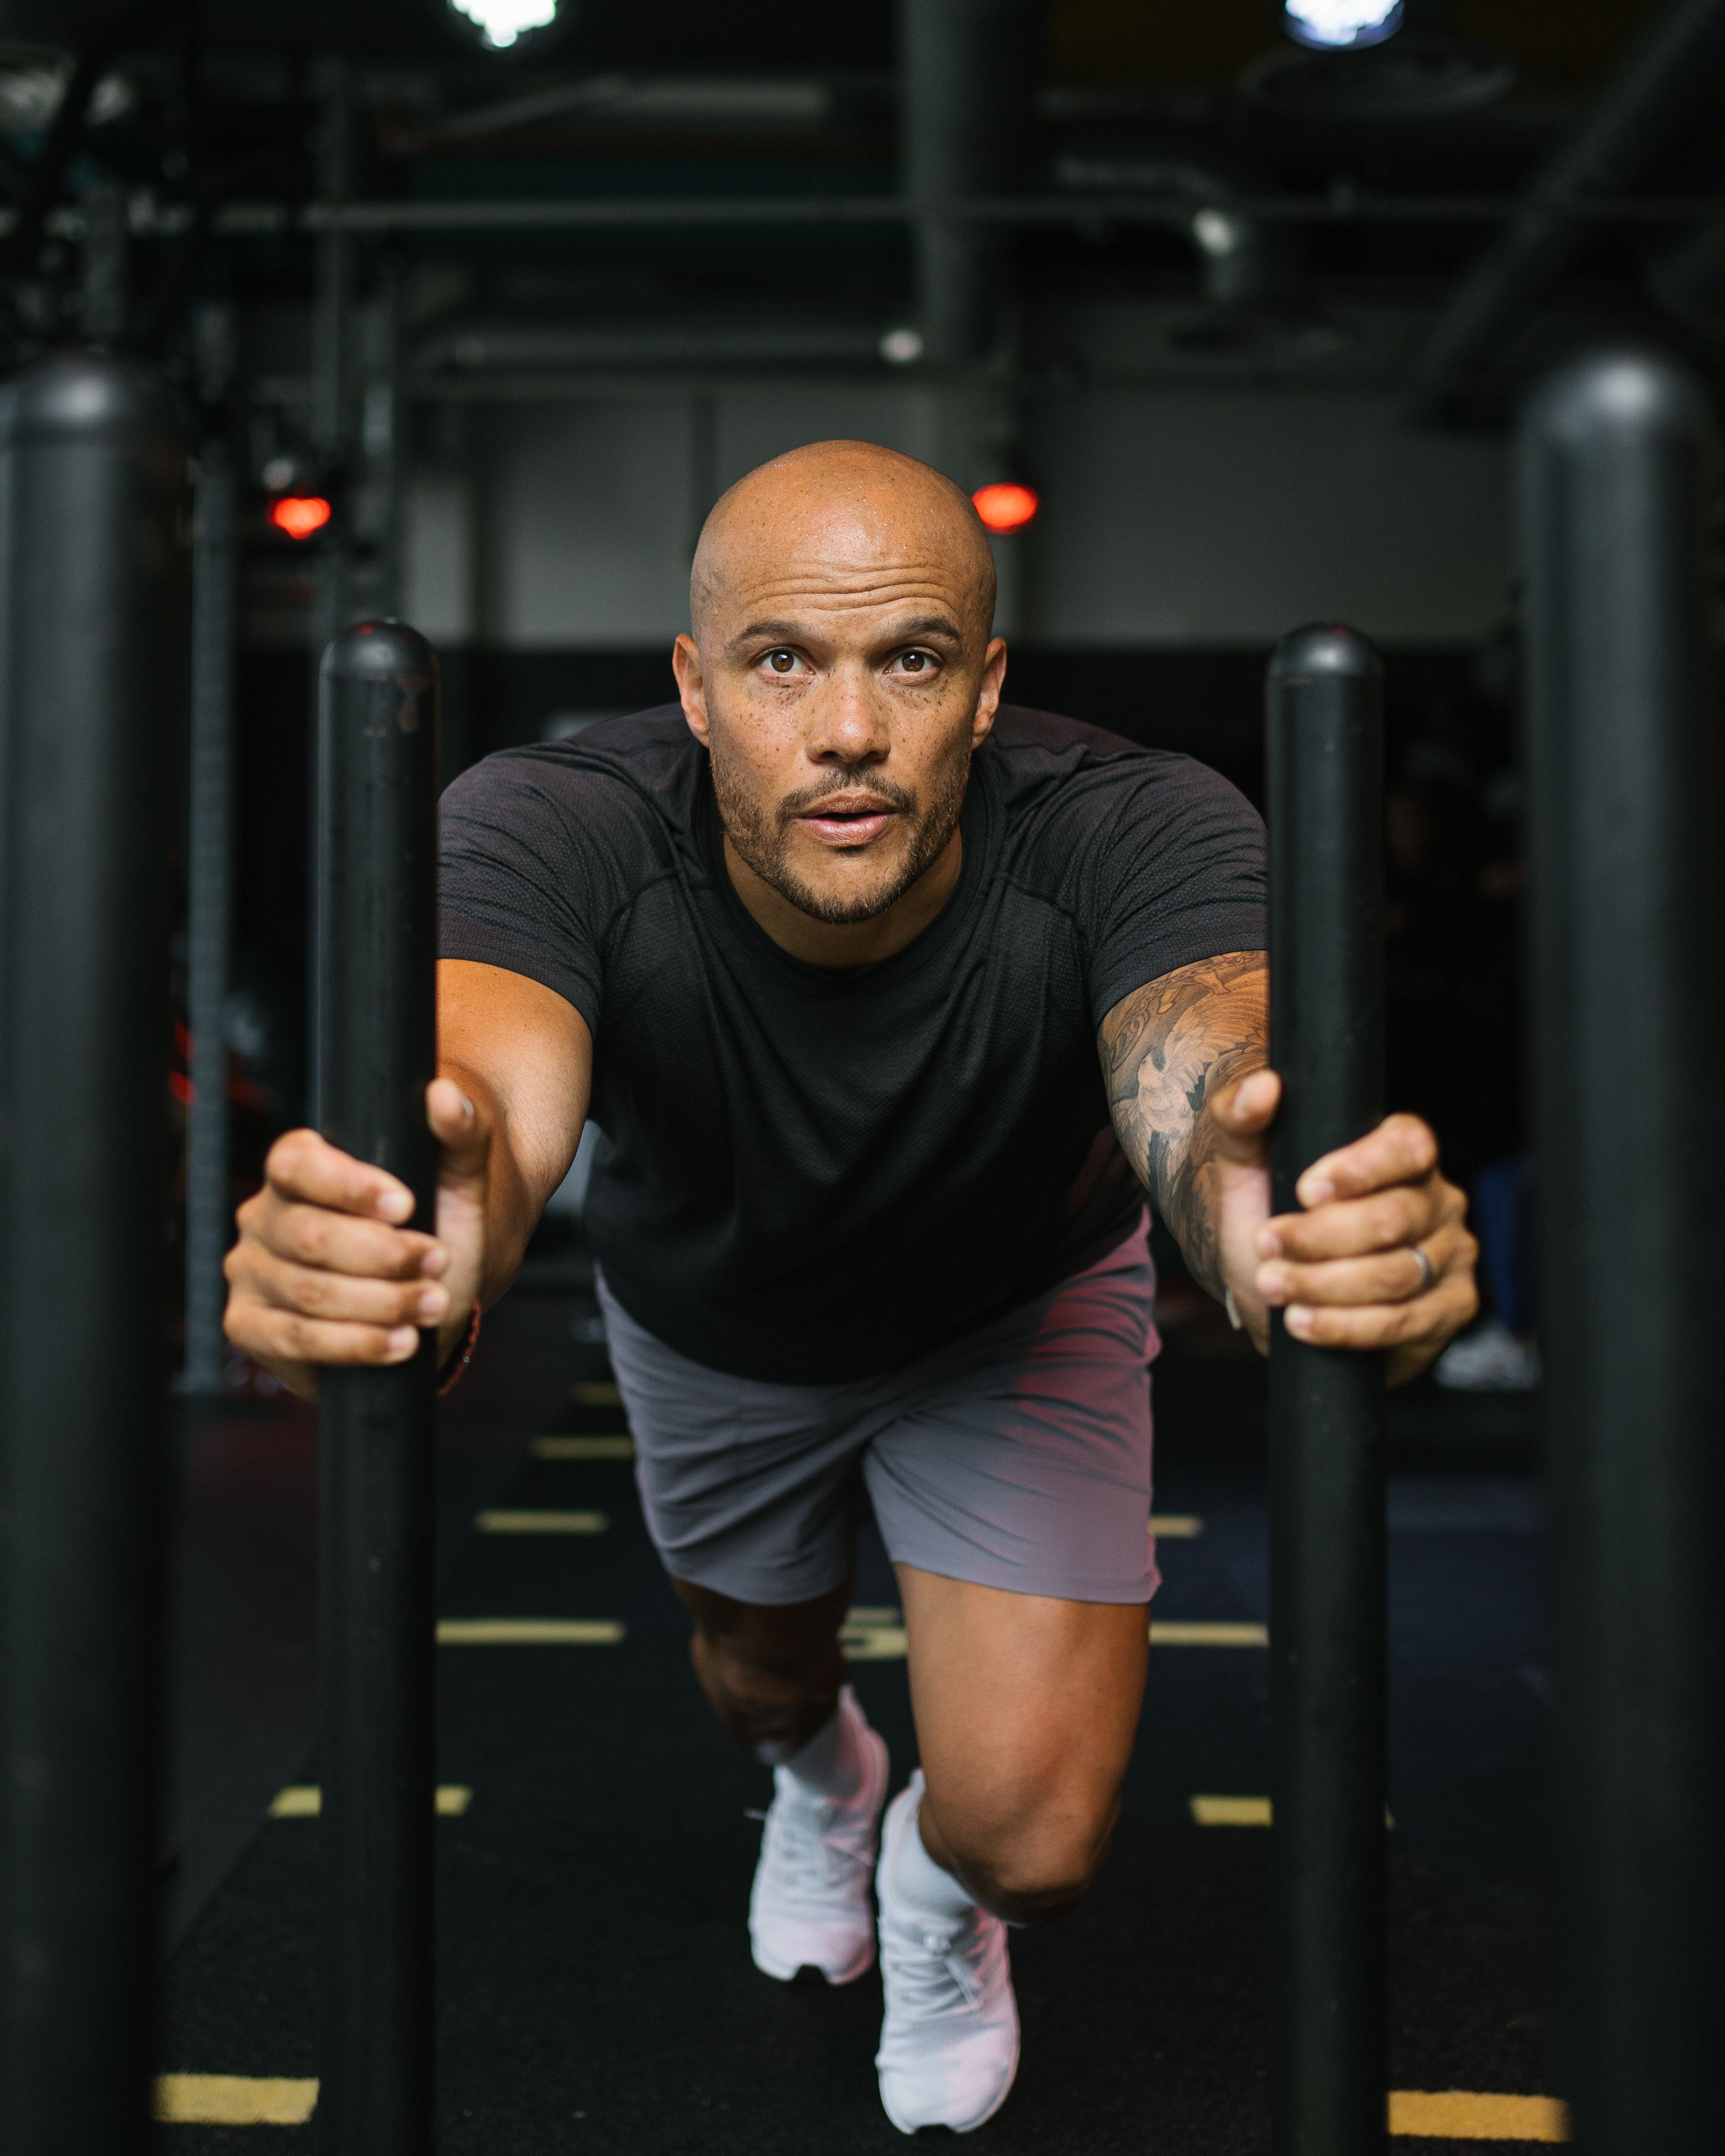 Personal Trainer Harry Jameson's 7 Rules For Conquering The Gym (And Your Mind)